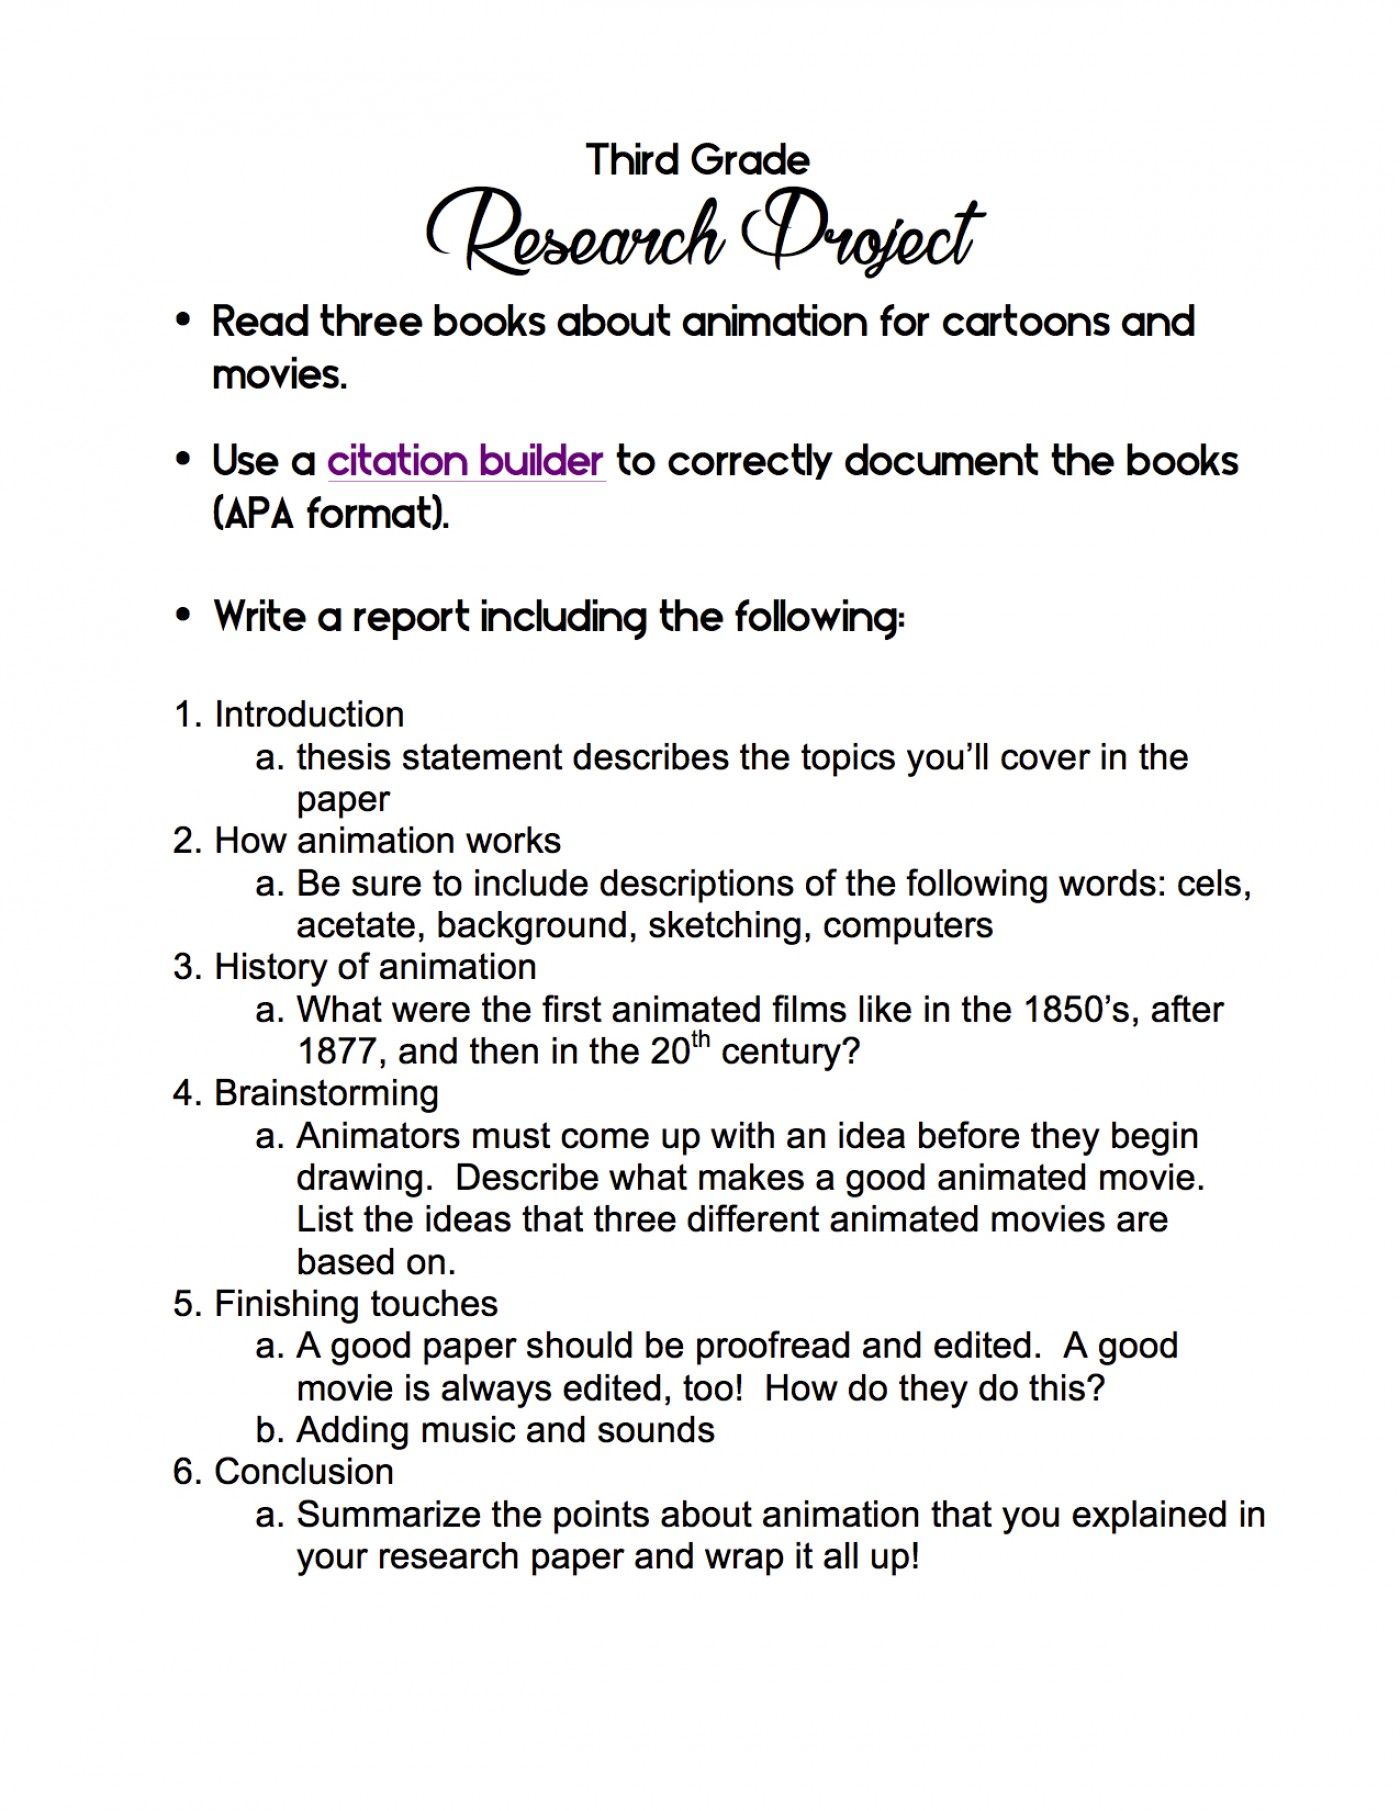 002 Research Paper Cancer Ideas 3rd Grade Shocking Breast Topic 1400